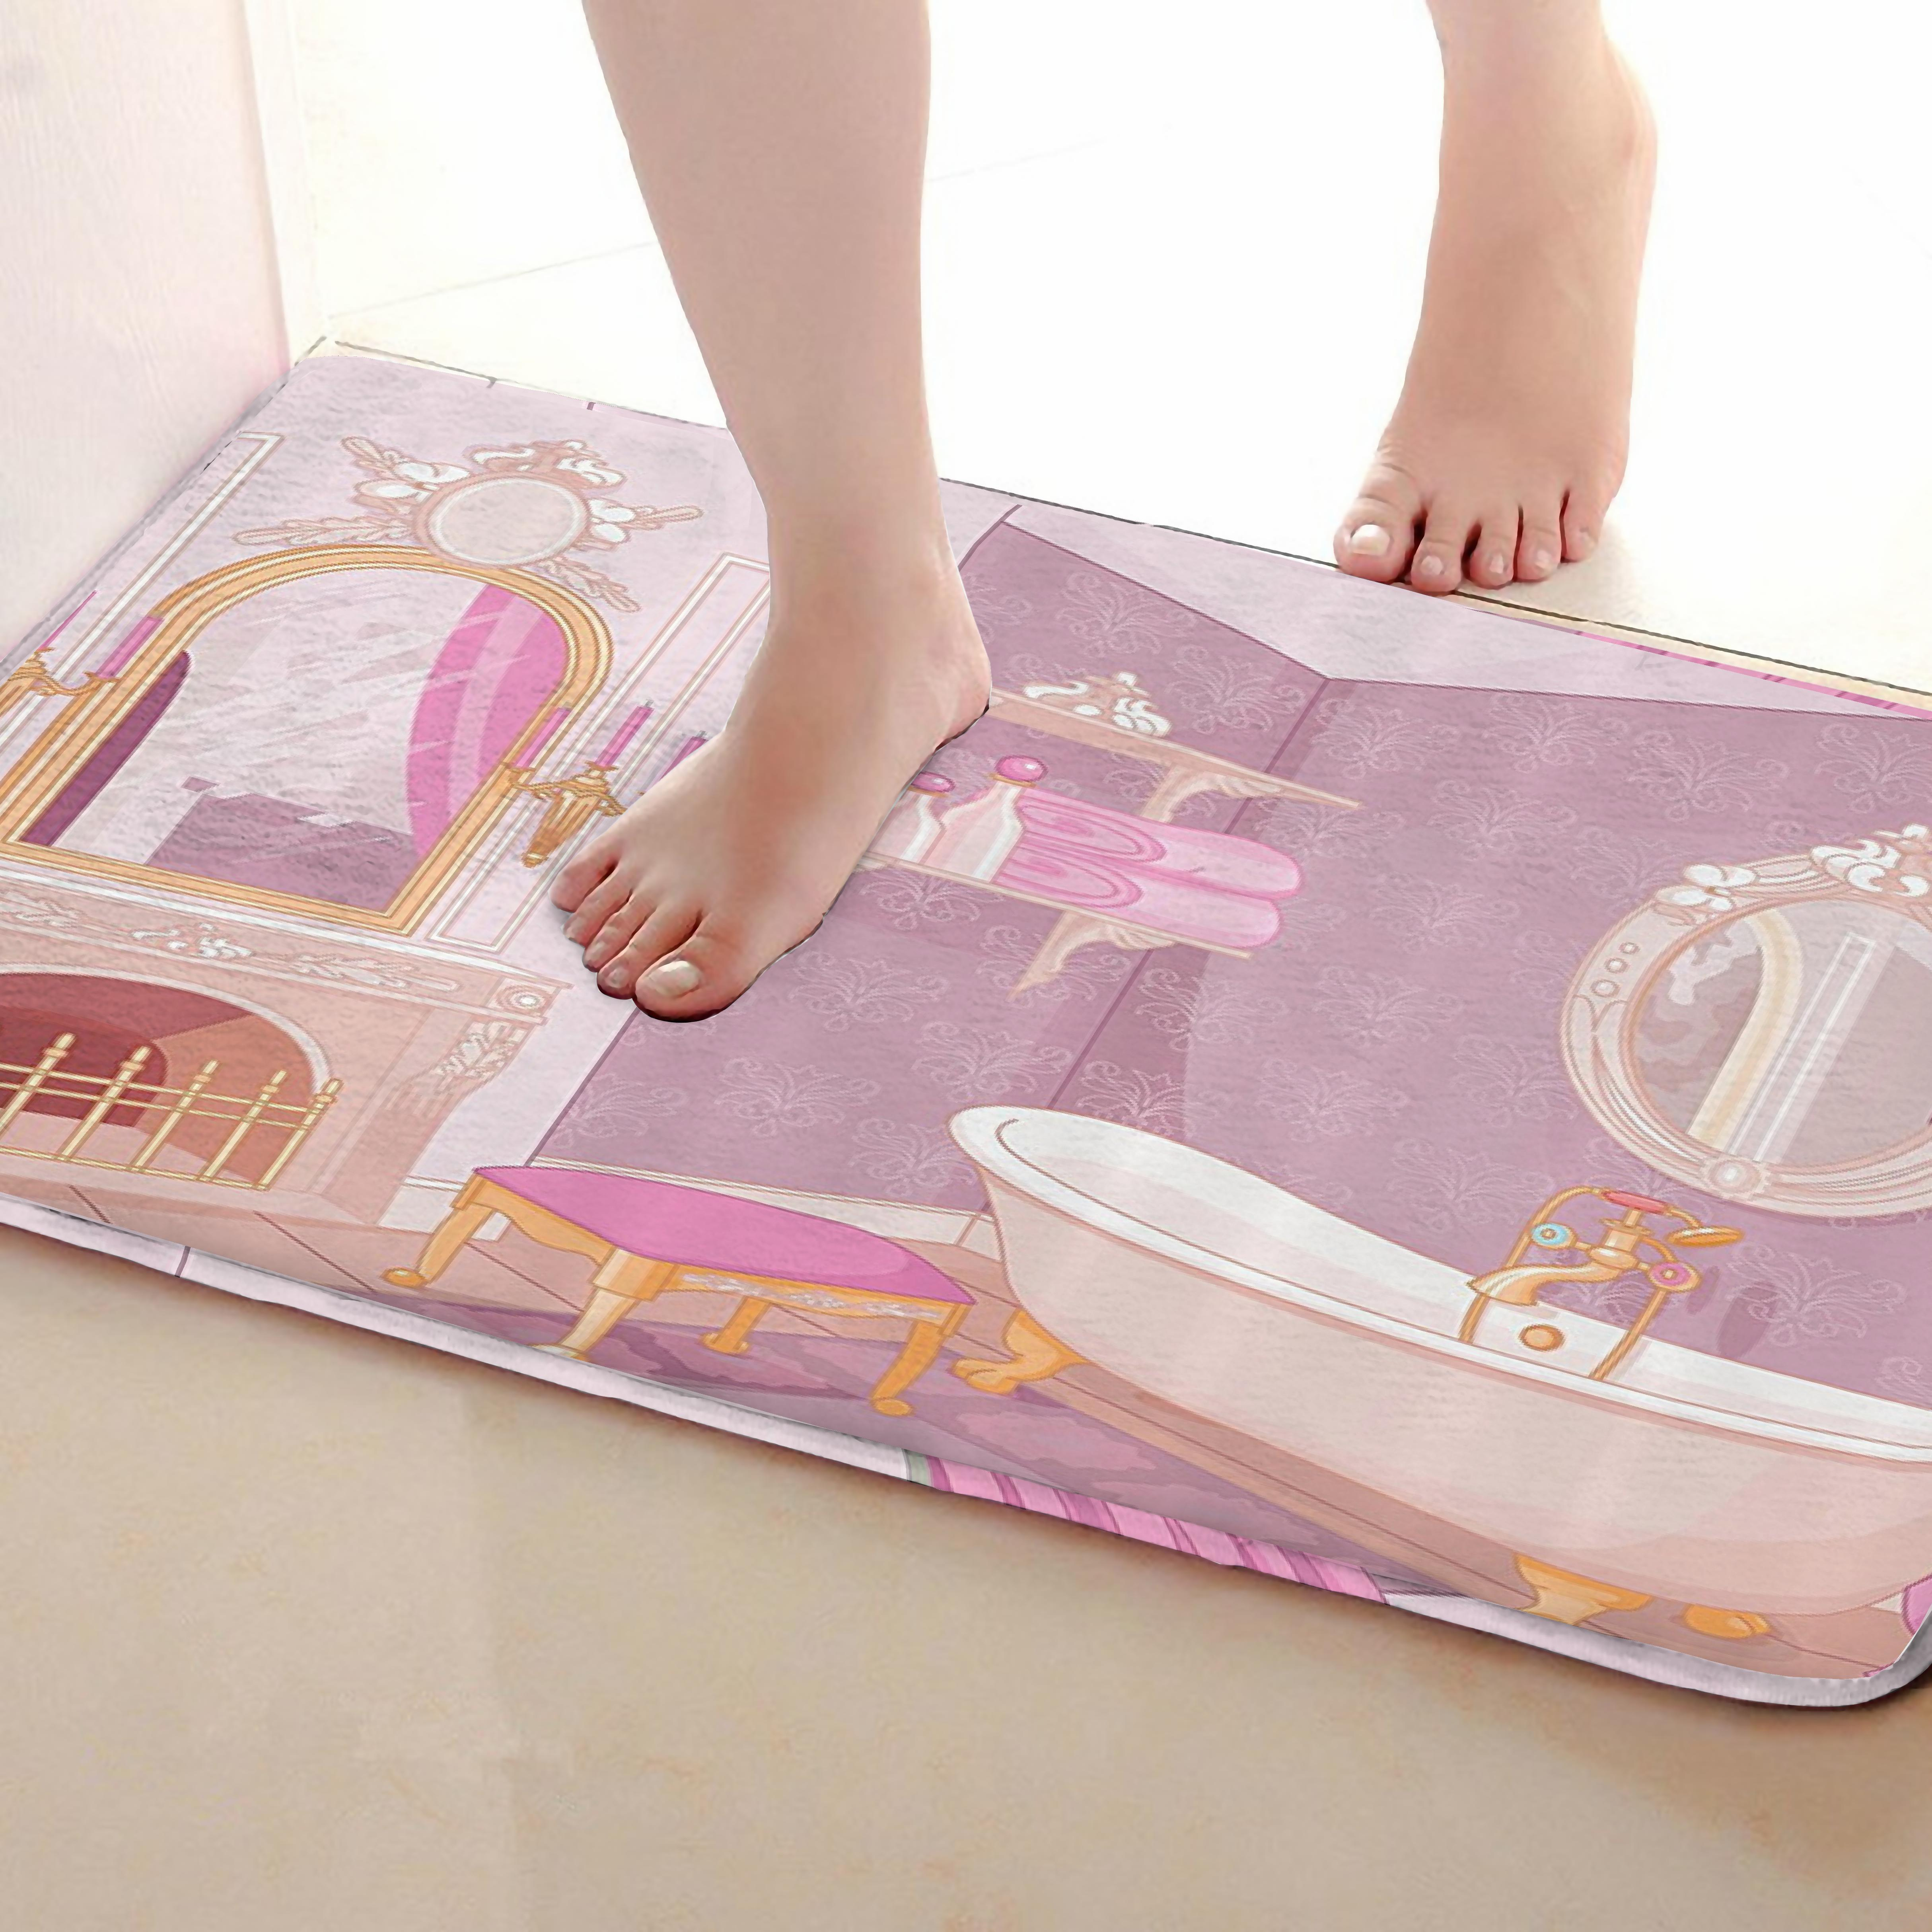 Bathroom Style Bathroom Mat,Funny Anti skid Bath Mat,Shower Curtains Accessories,Matching Your Shower Curtain